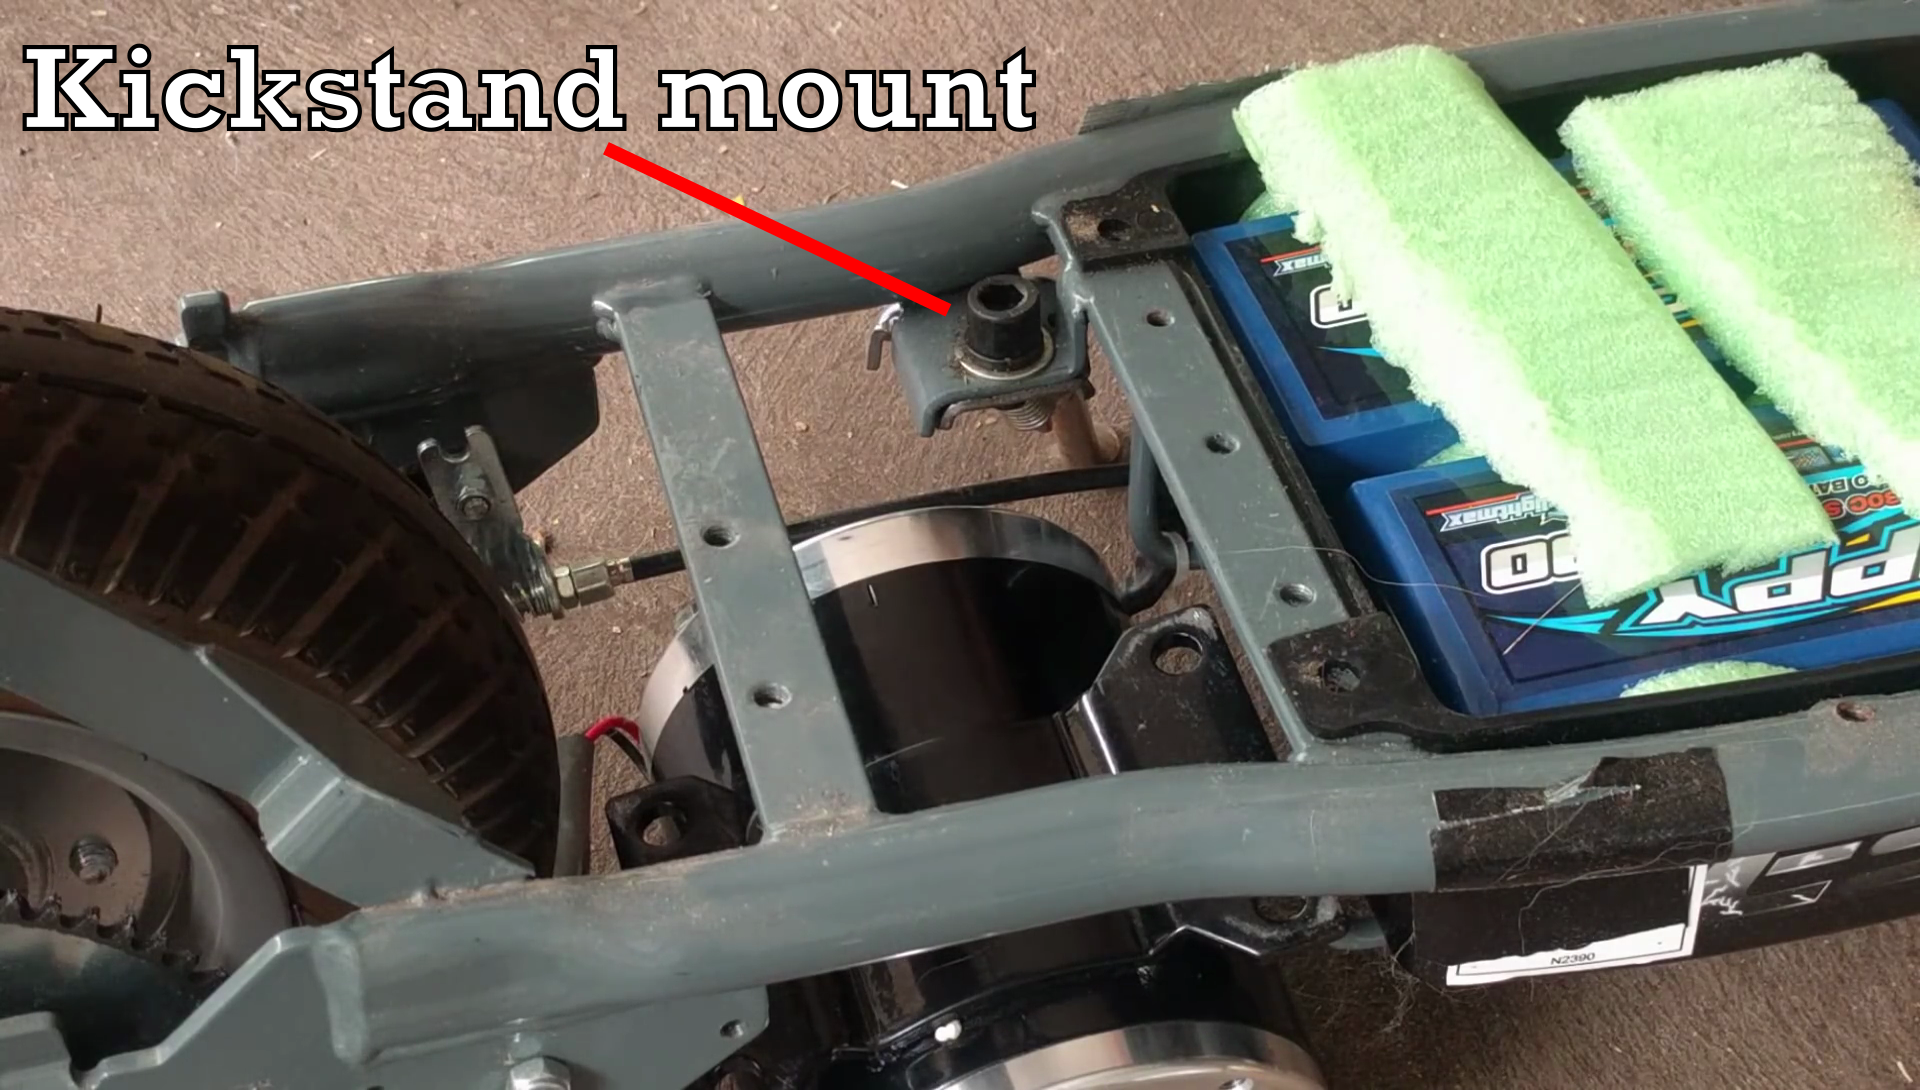 First to go was the kickstand - the mount was in the way of where FAT PRECIOUS MOTOR needed to be. It actually kinda sucked having to do this - the ...